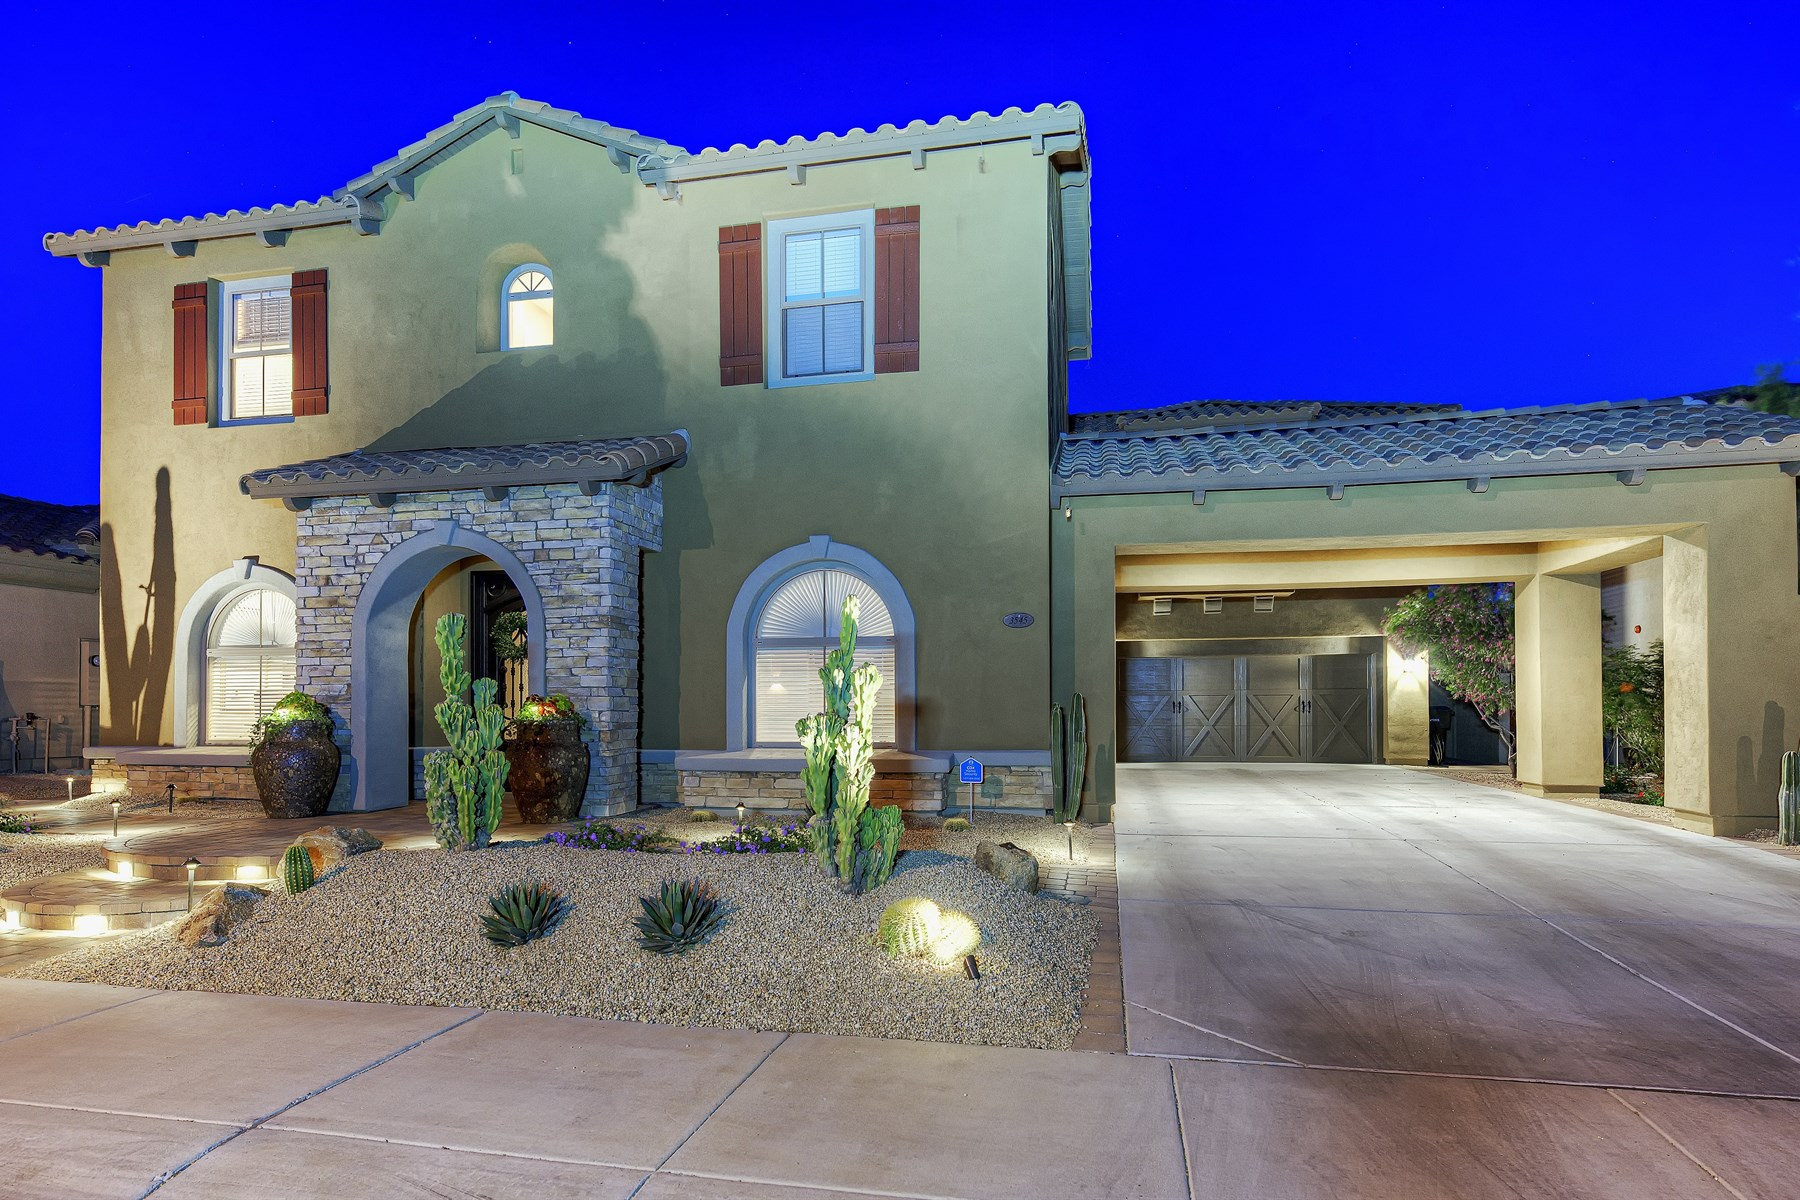 Casa Unifamiliar por un Venta en Fabulous home in Aviano situated on large lot backing to open space. 3545 E EXPEDITION WAY Phoenix, Arizona 85050 Estados Unidos